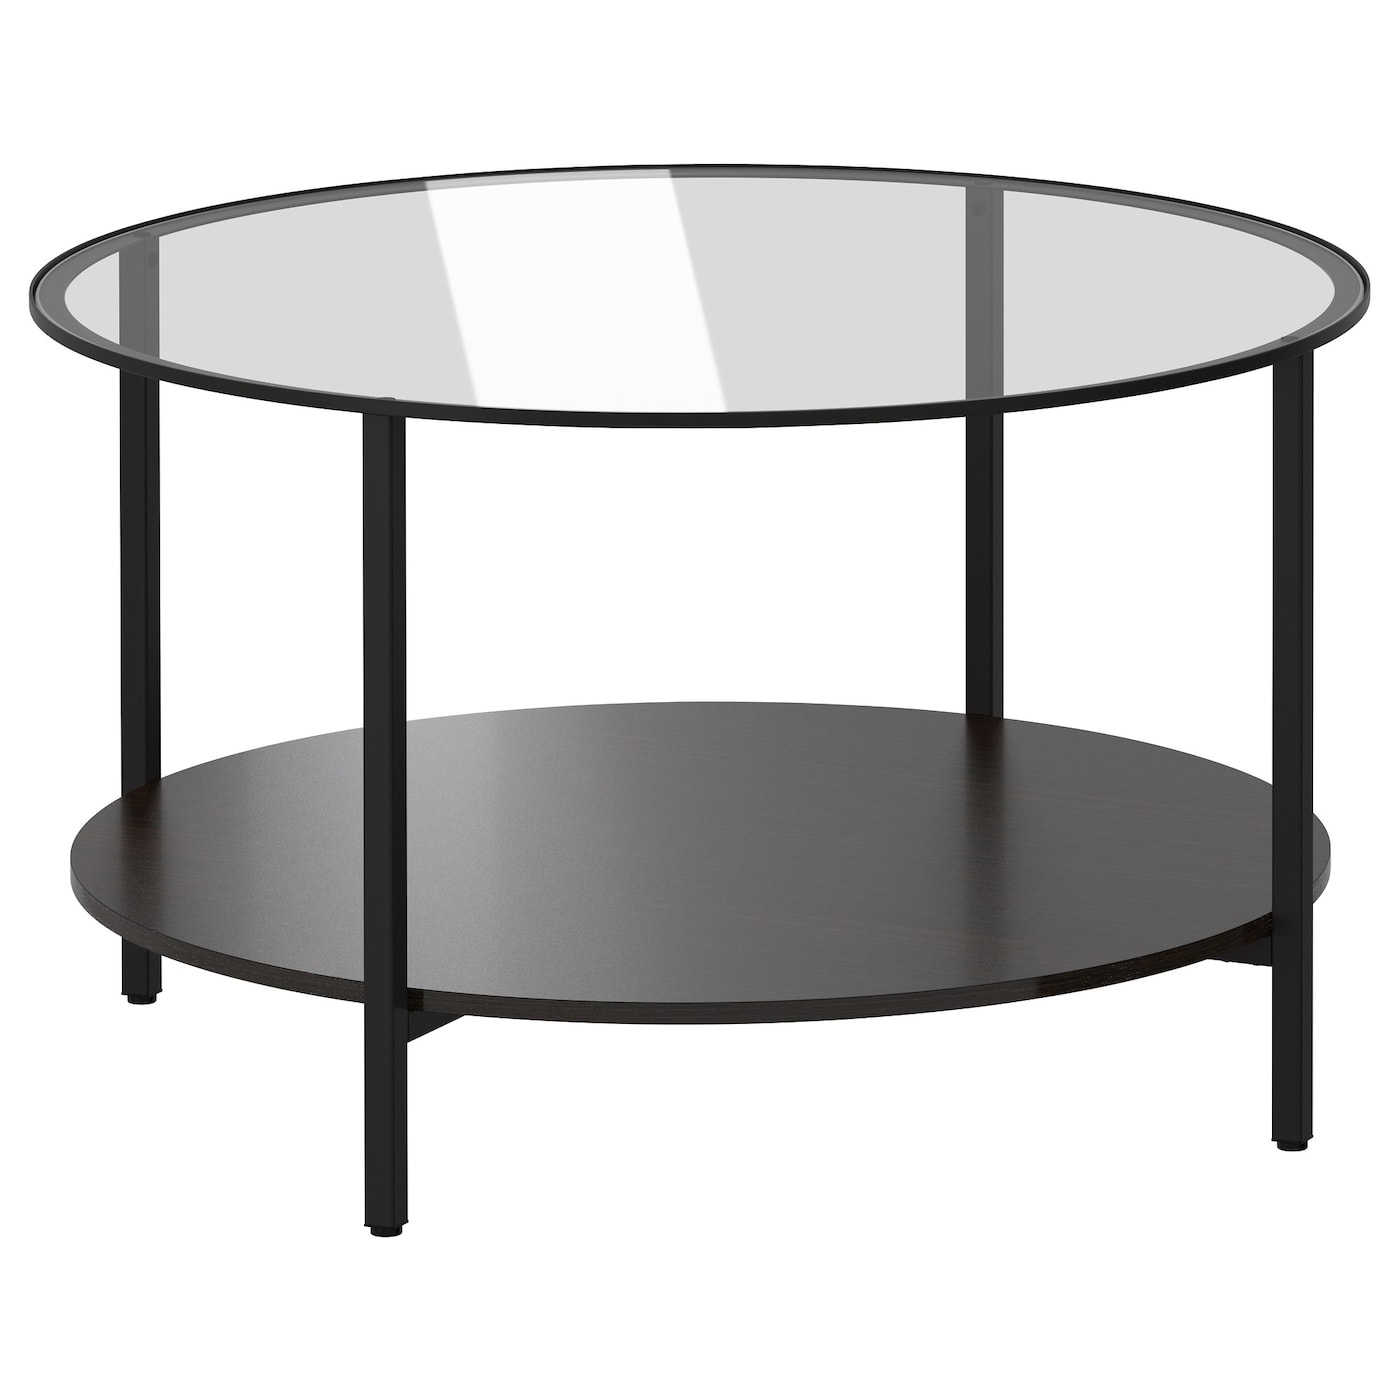 vittsj coffee table black brown glass 75 cm ikea